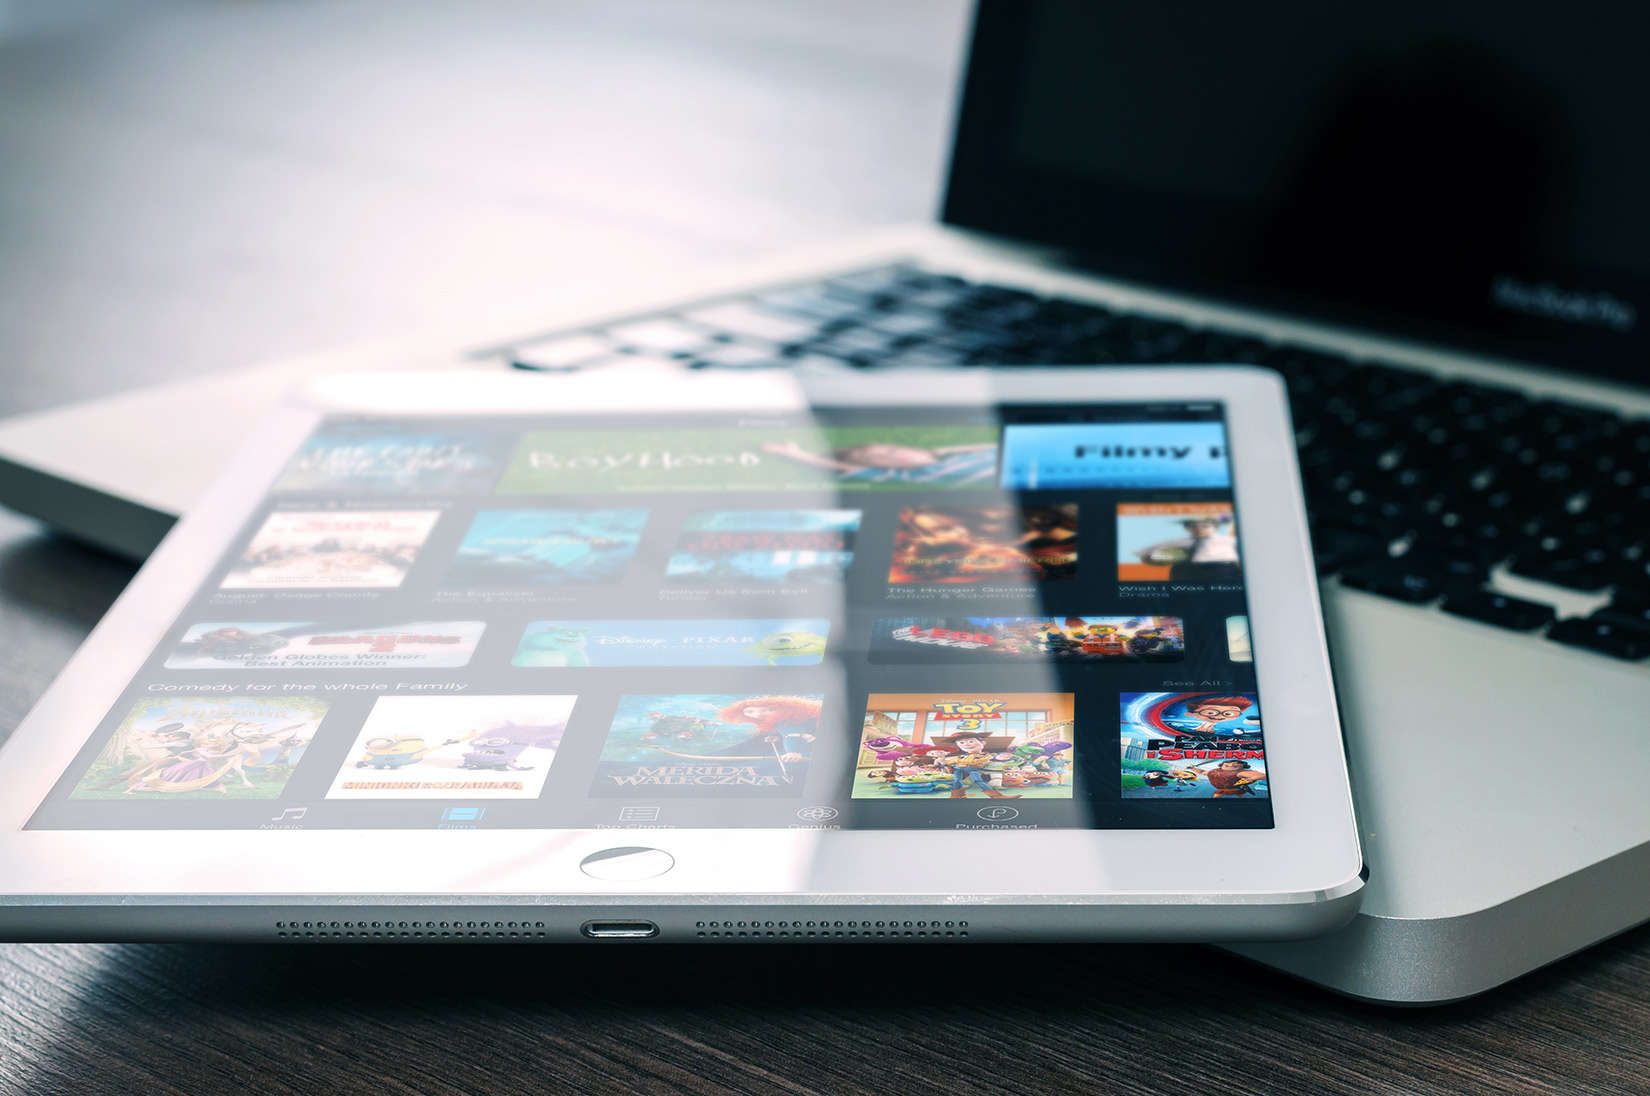 Apple wants a deal with studio execs to bring high-priced movie rentals to iTunes within days of release.